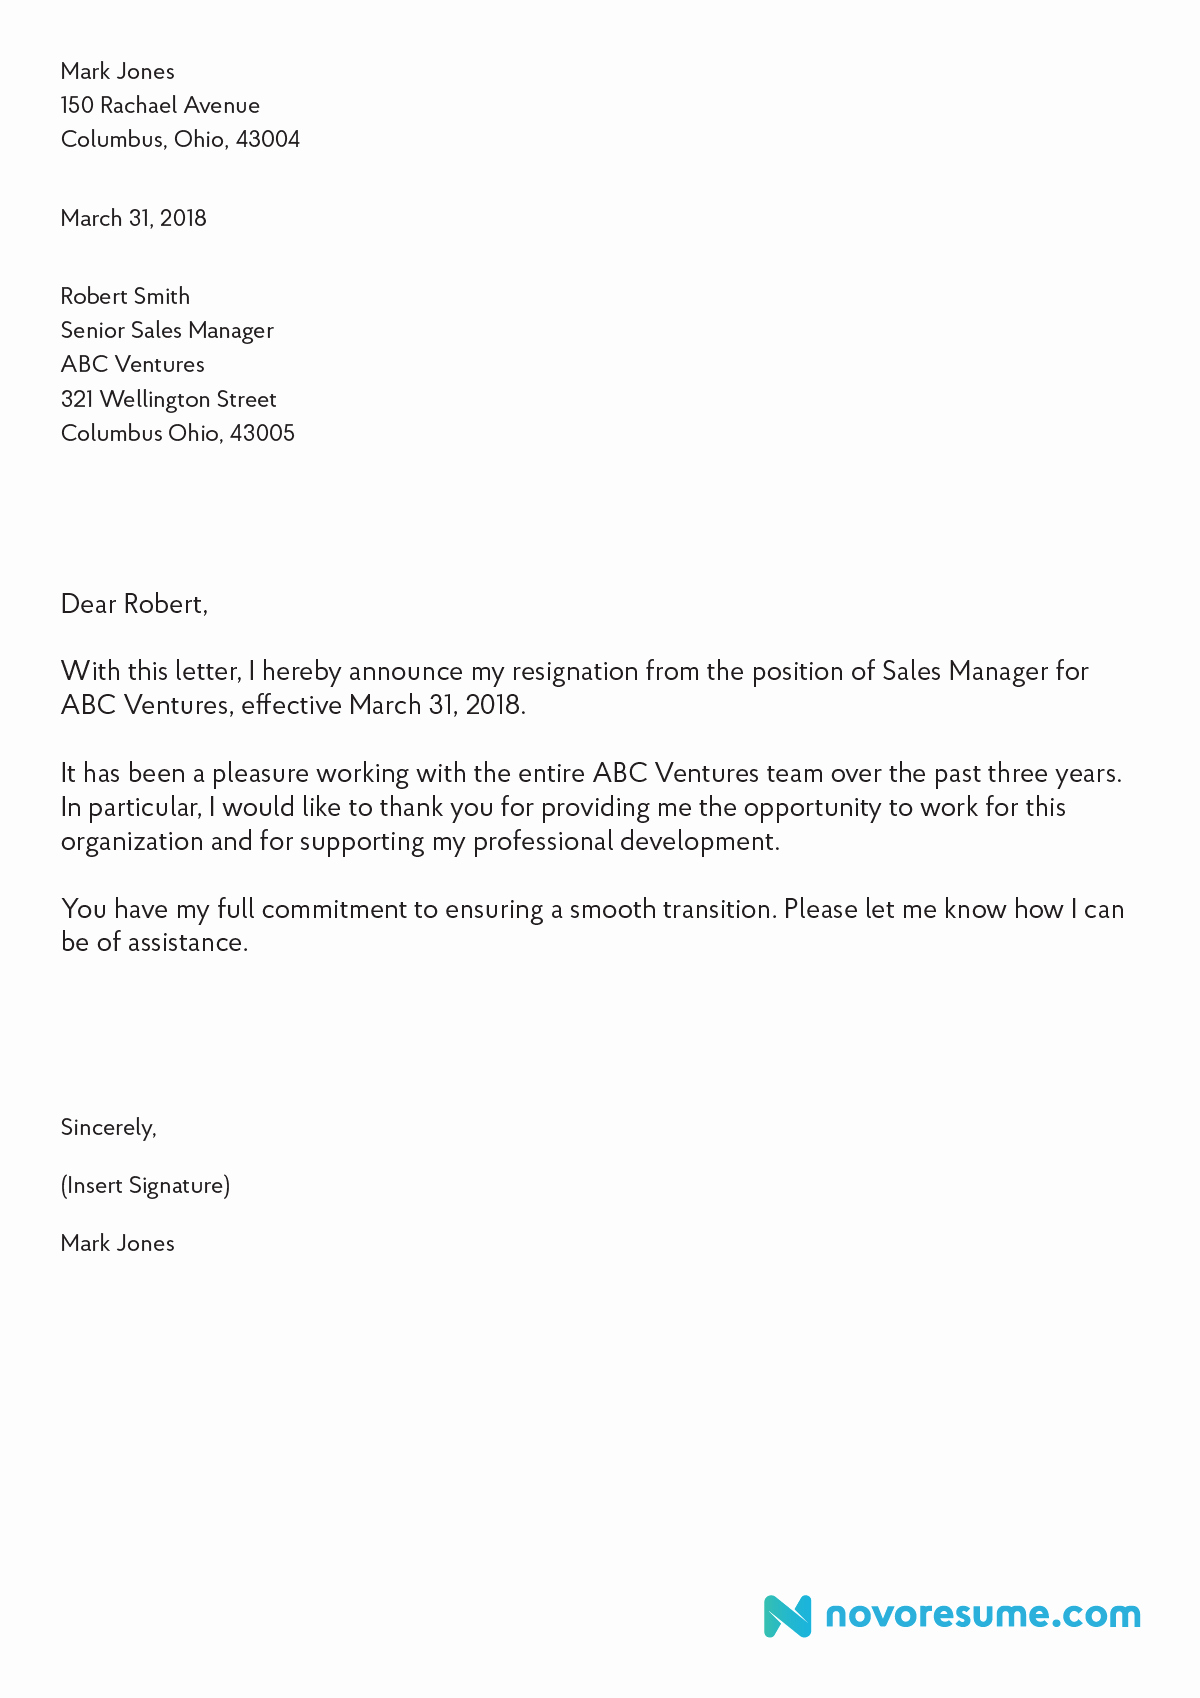 Letter Of Resignation Templates Word Inspirational Resignation Letter Template